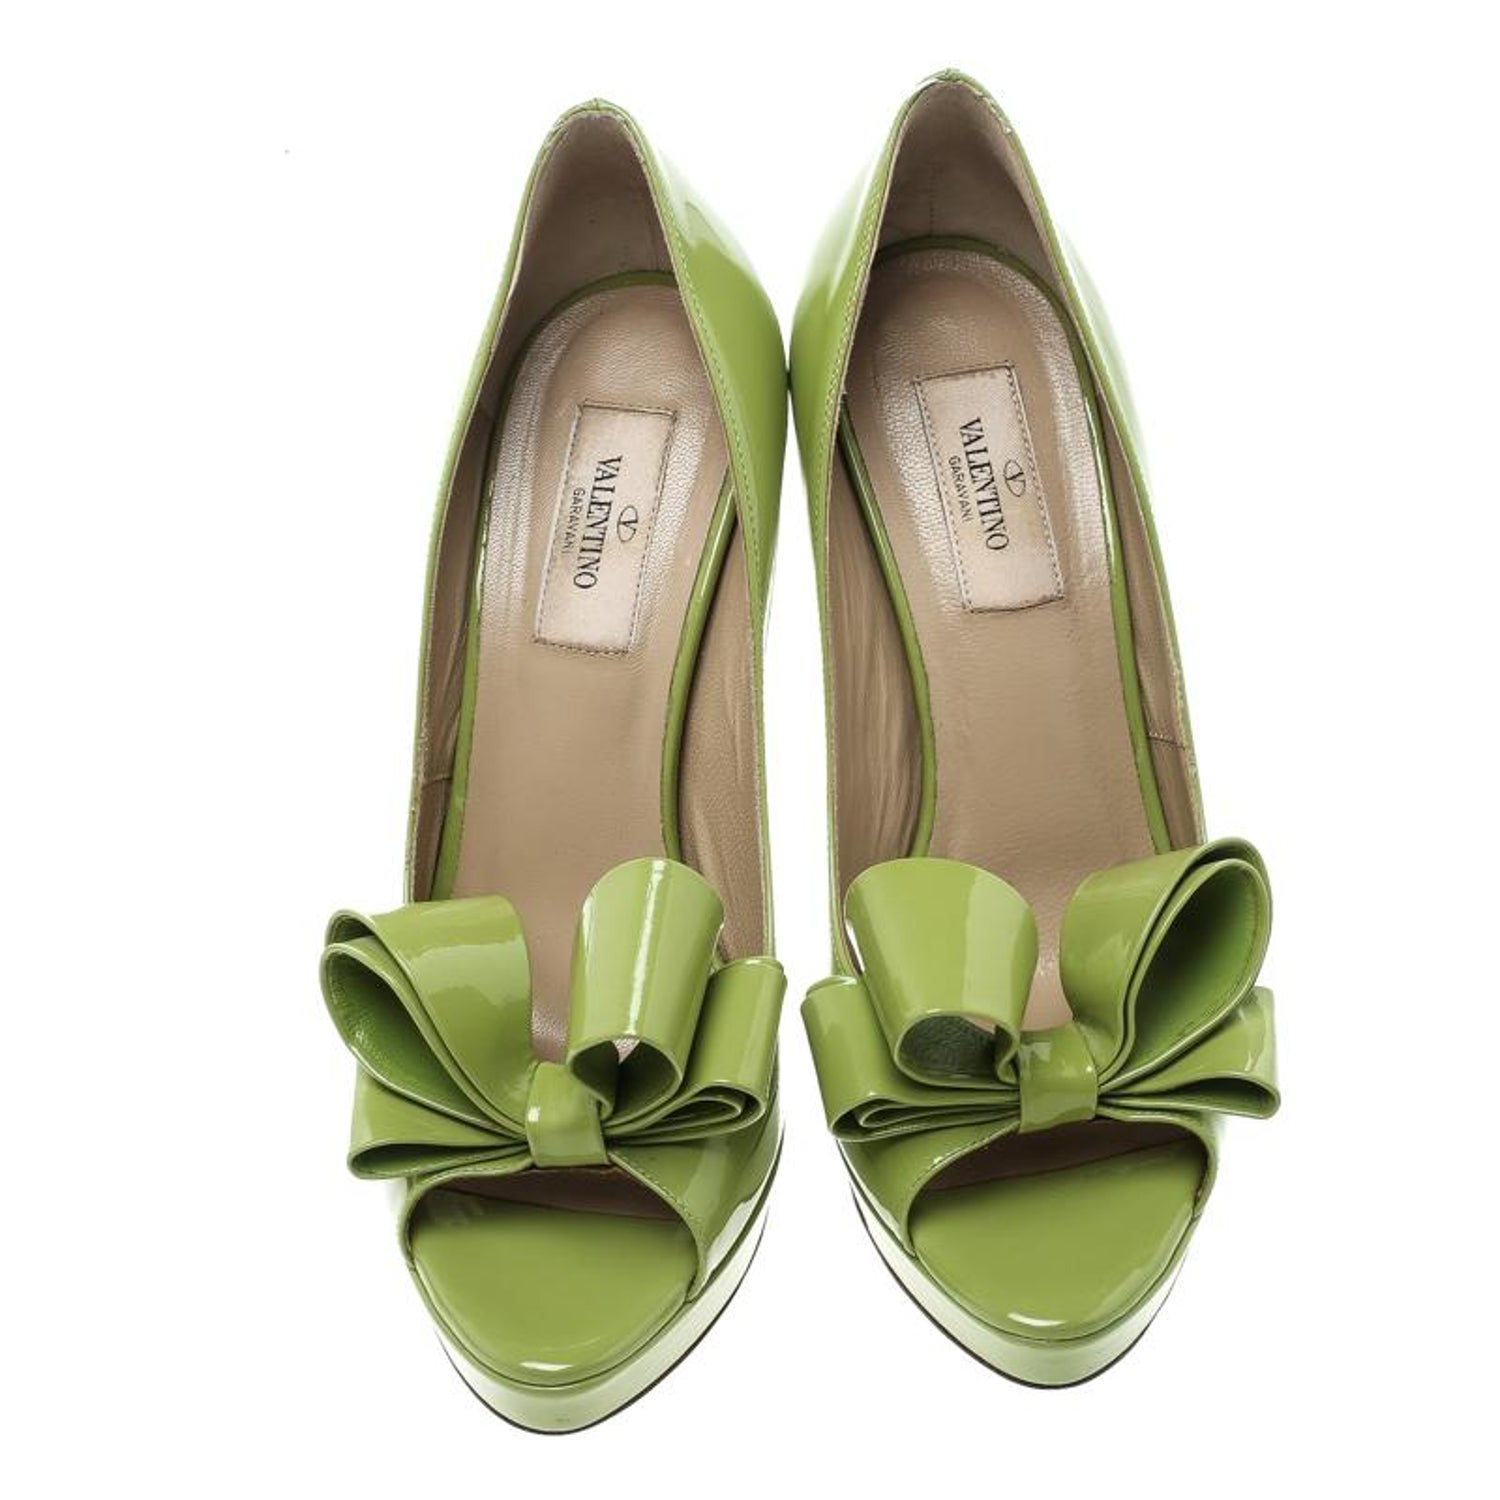 7f1cb644e68 Valentino Lime Green Patent Leather Couture Bow Peep Toe Platform Pumps  Size 38 For Sale at 1stdibs